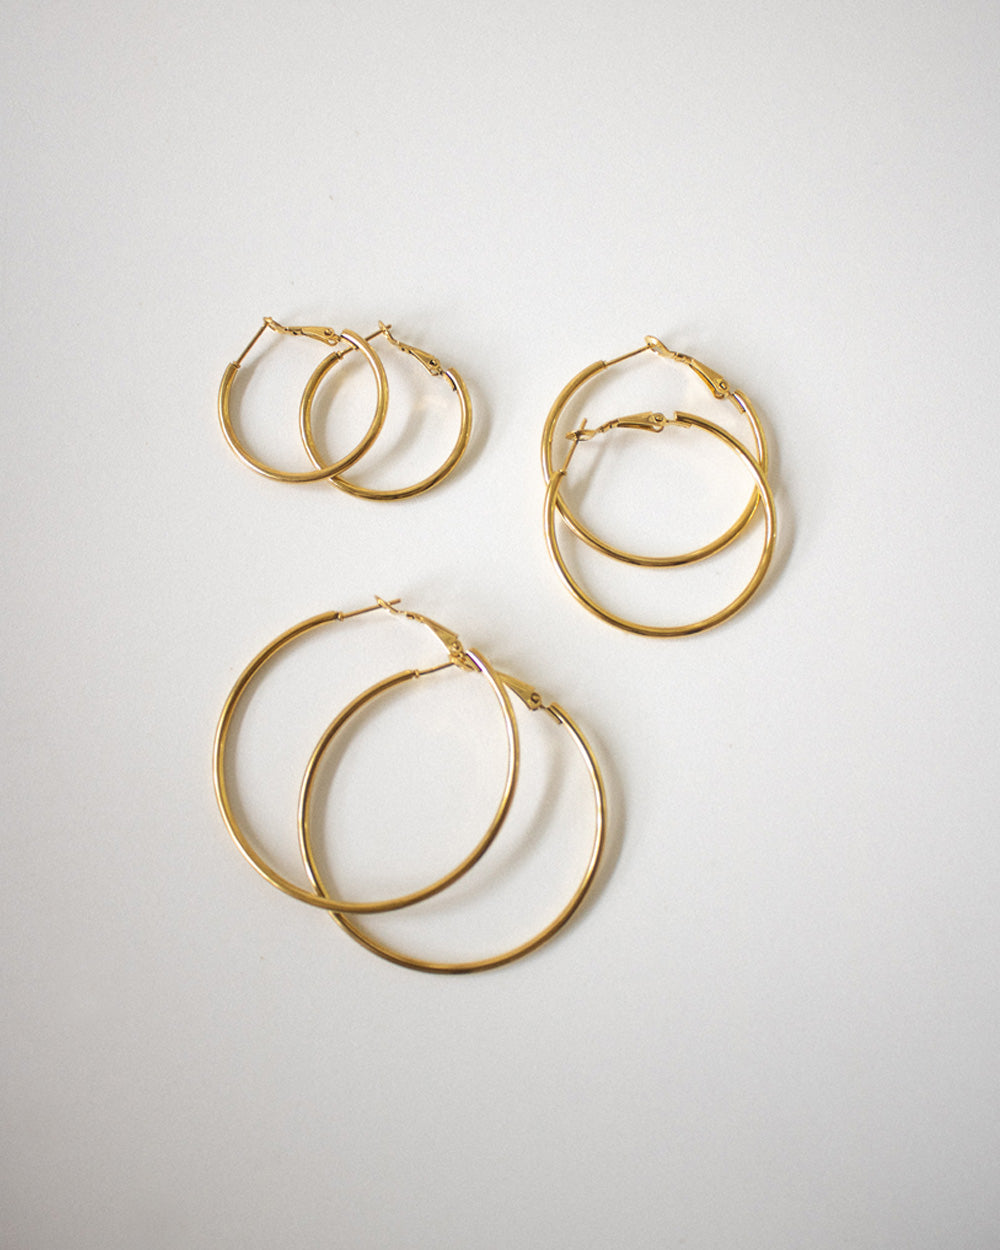 Skinny Saki Gold Hoops in 30mm, 40mm and 50mm diameter - The Hexad Earrings